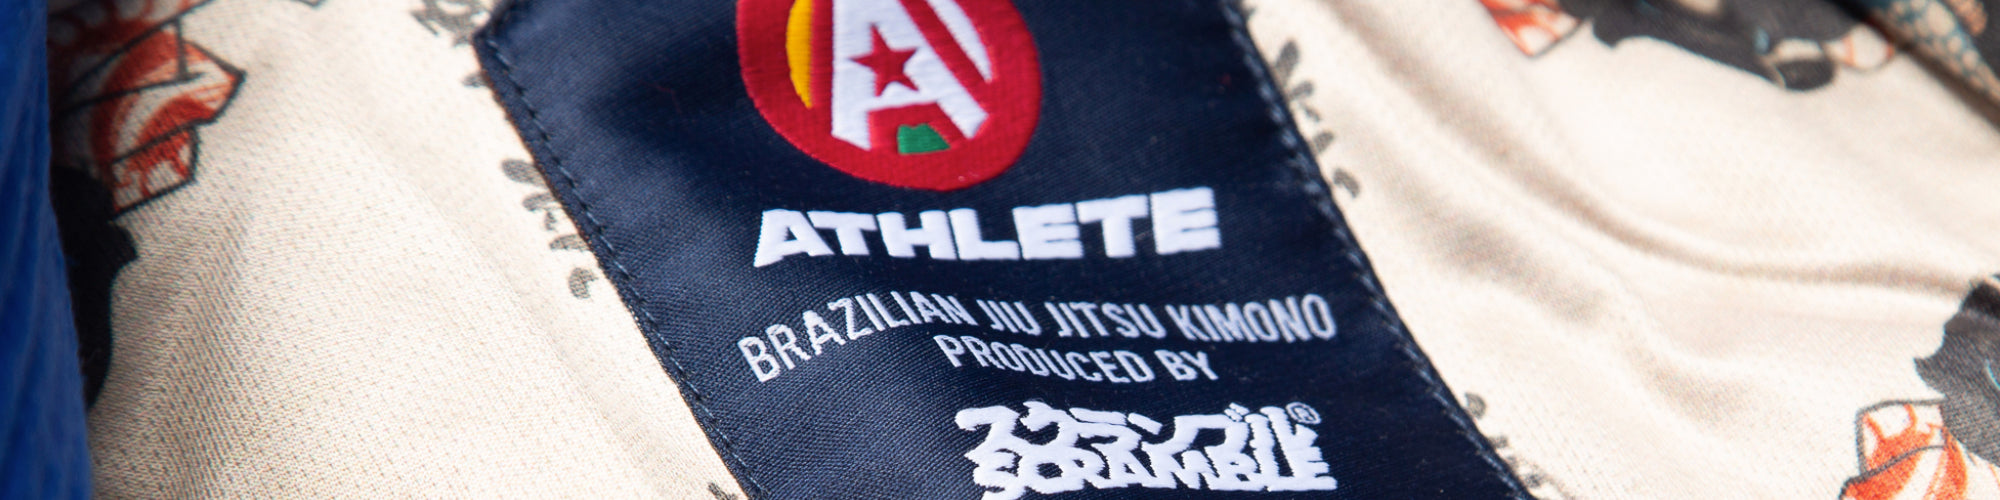 Scramble Athlete 4 Jiu-Jitsu Gi